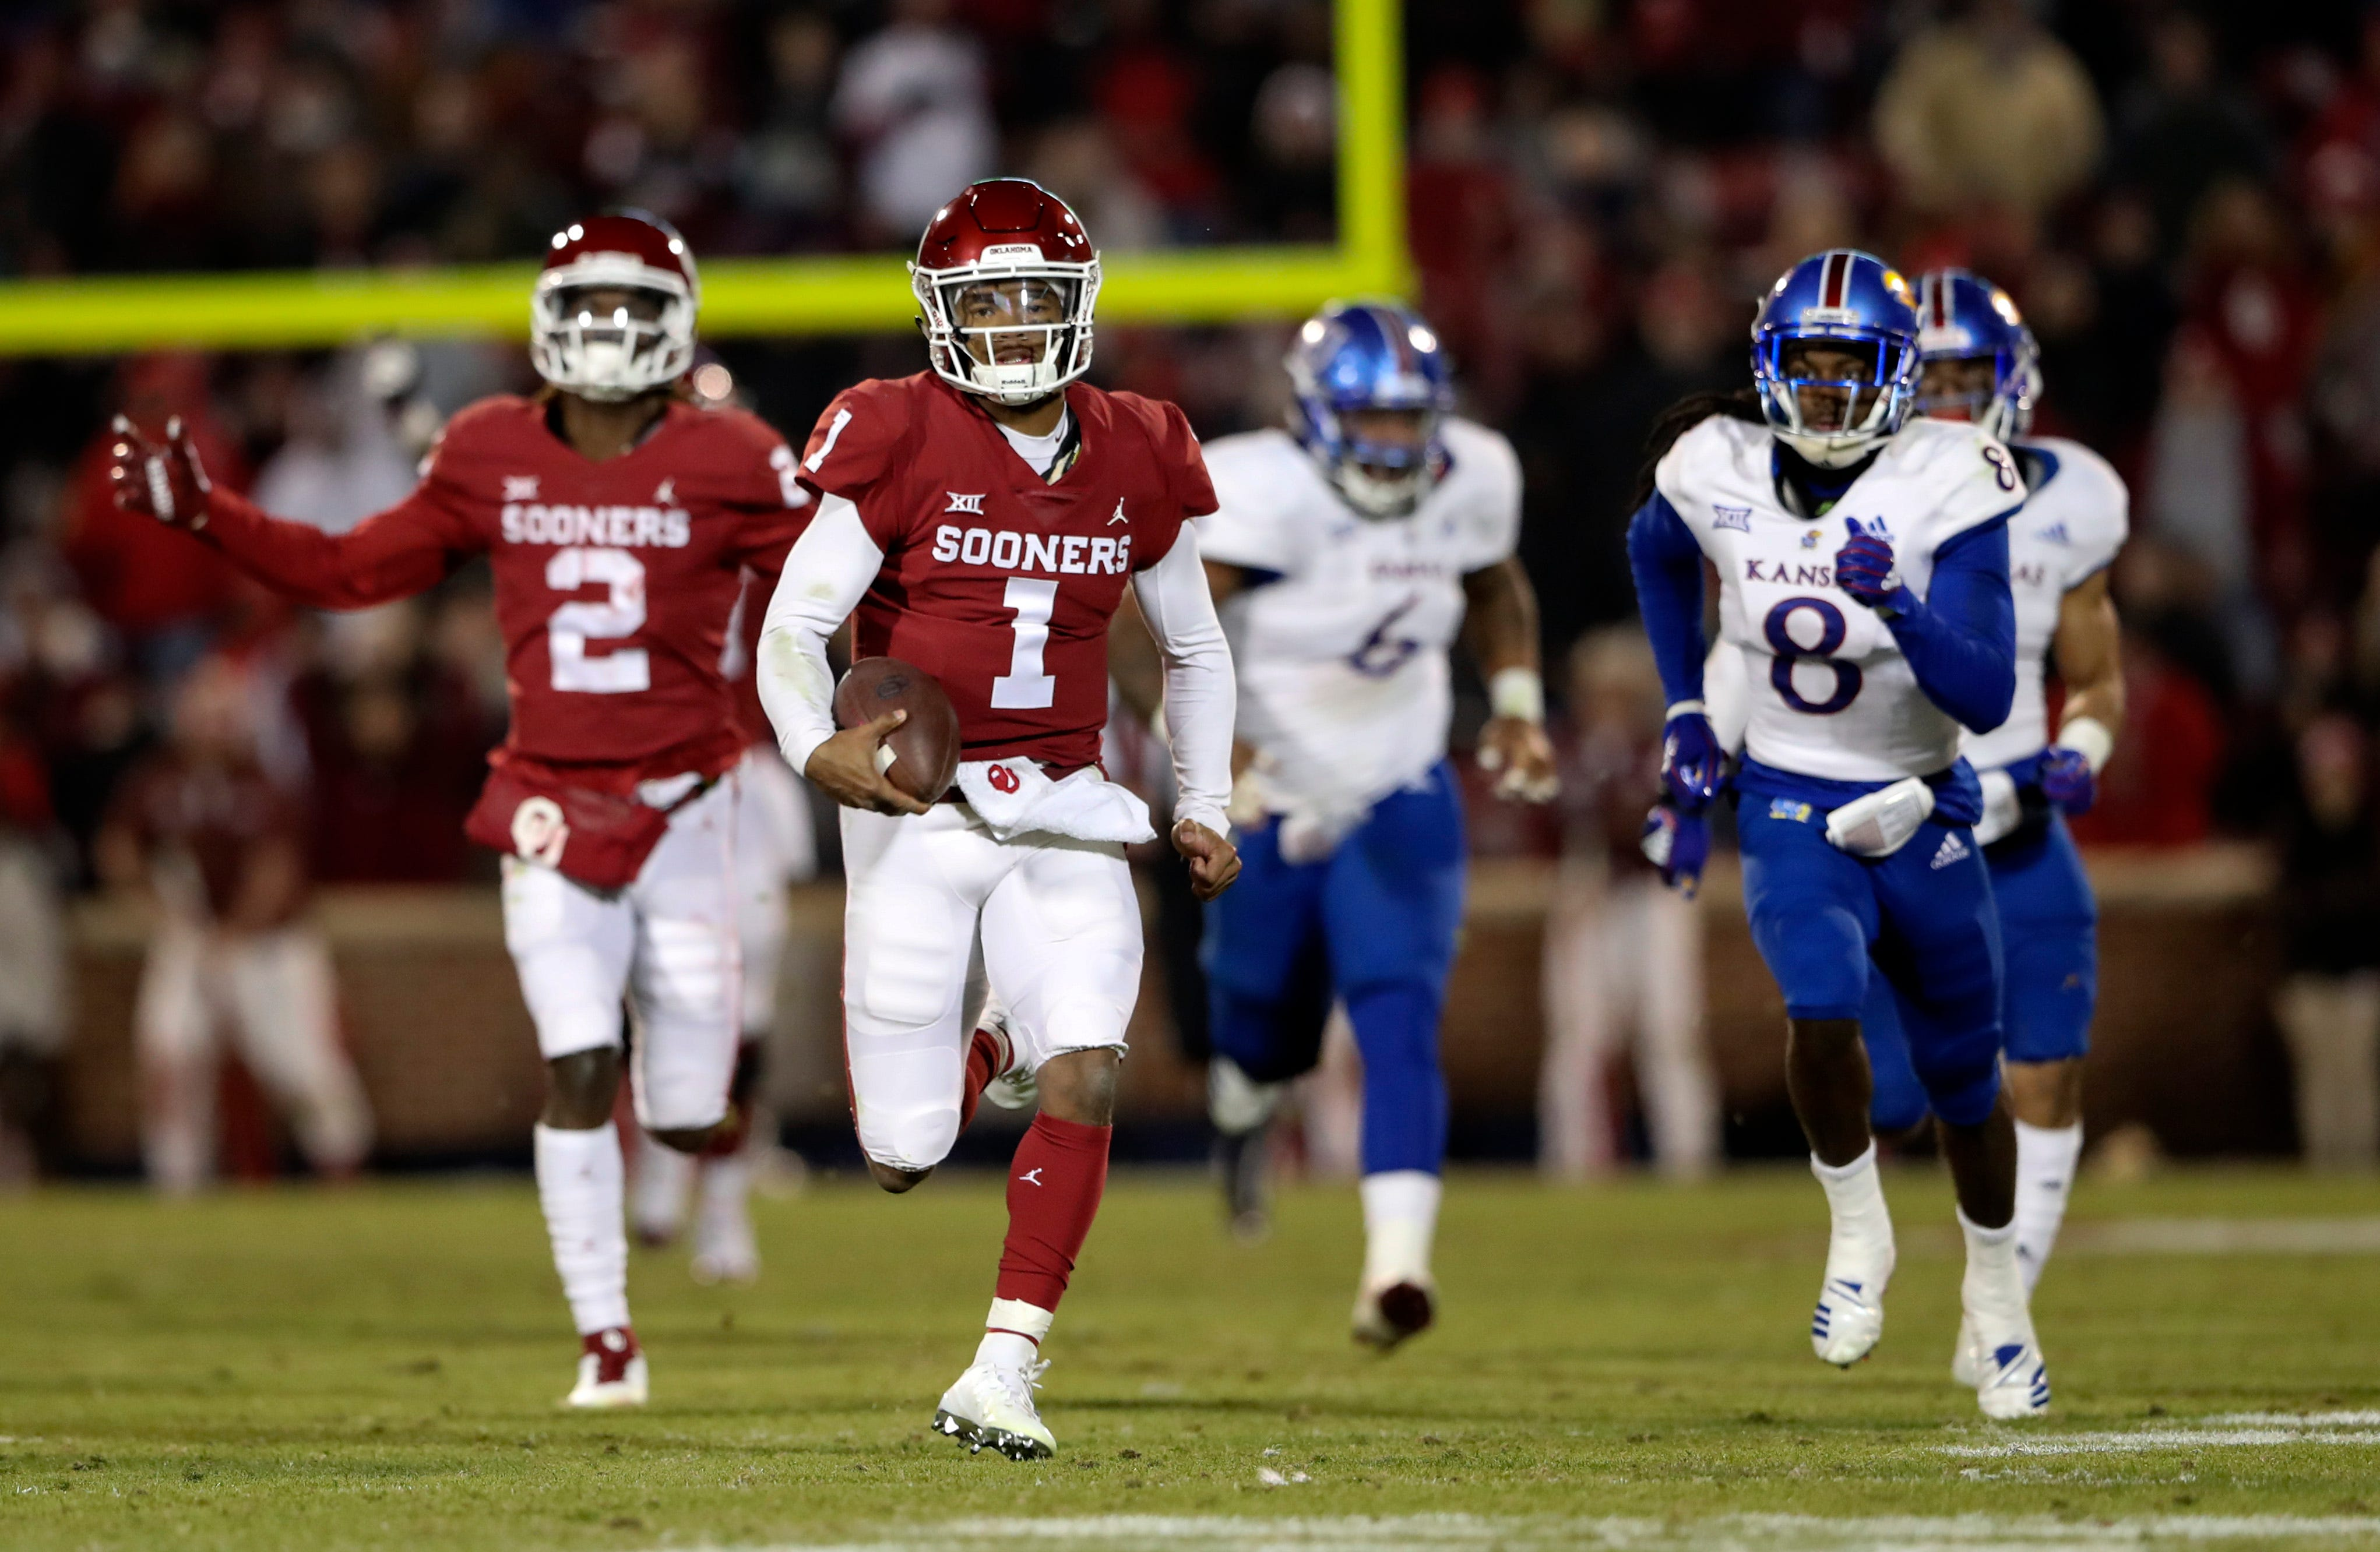 OKlahoma quarterback Kyler Murray breaks free for a touchdown during the second half against Kansas.